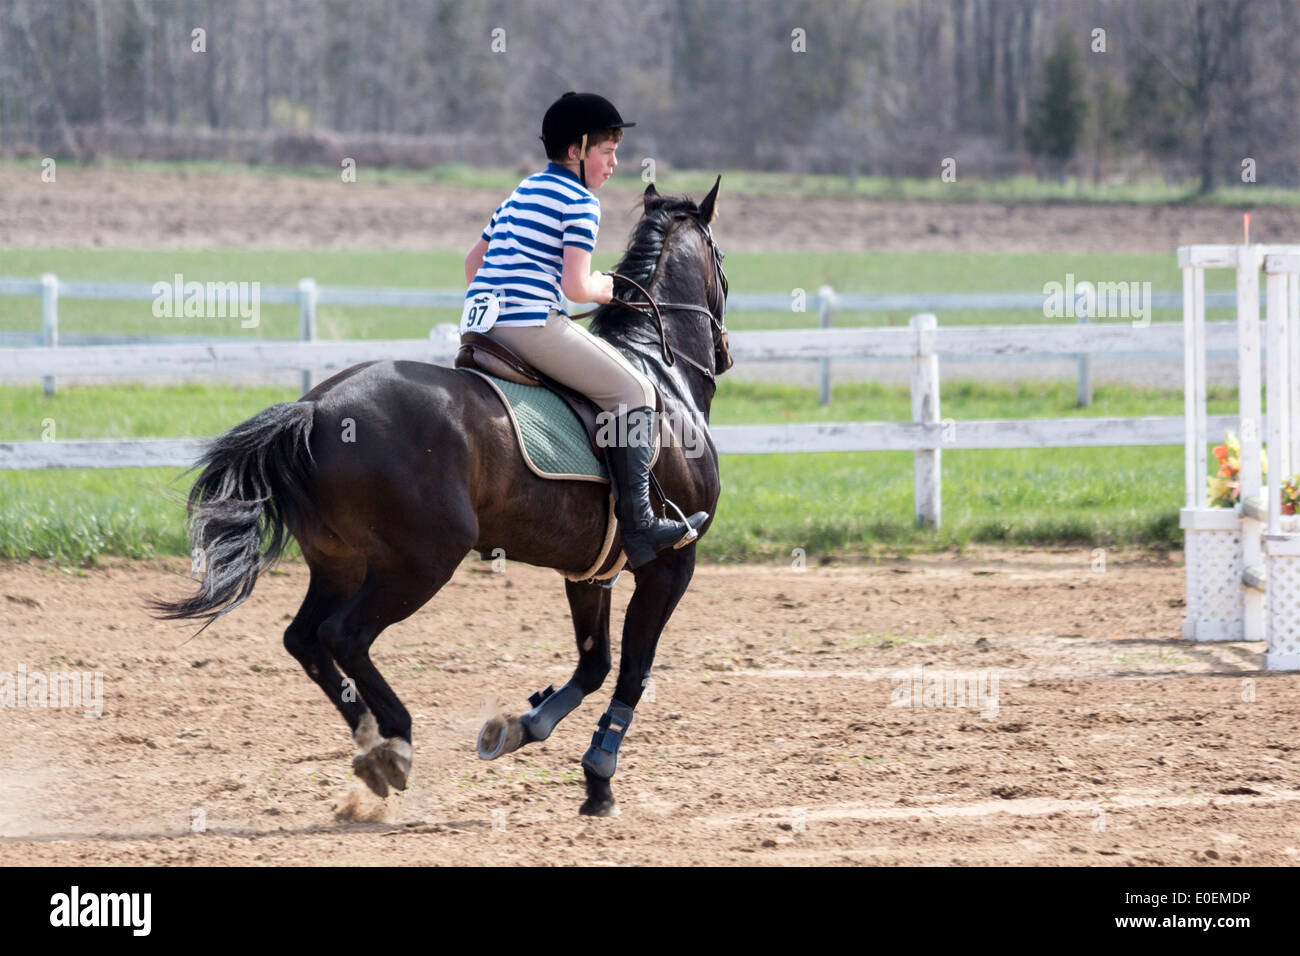 Teenage Boy On Dark Bay Pony Preparing For Going Over A Jump At A Stock Photo Alamy